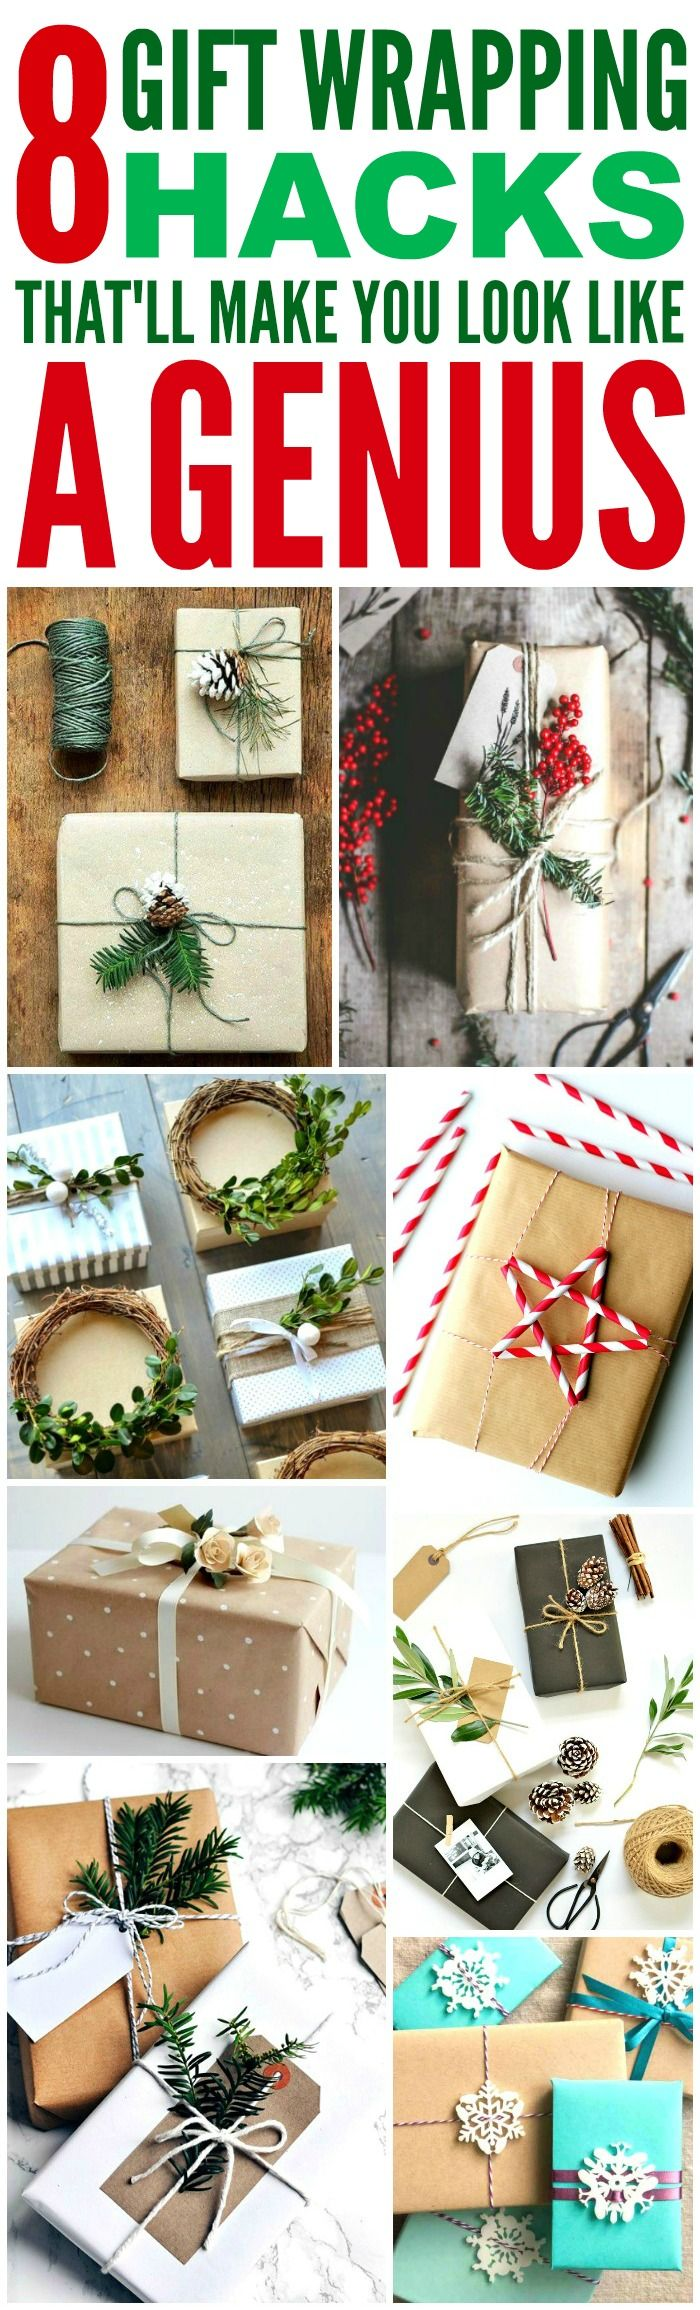 These 8 Creative Ways to wrap Christmas Presents are THE BEST! I'm so glad I found these GREAT tips! Now I can impress friends and family with my skill! Definitely pinning!